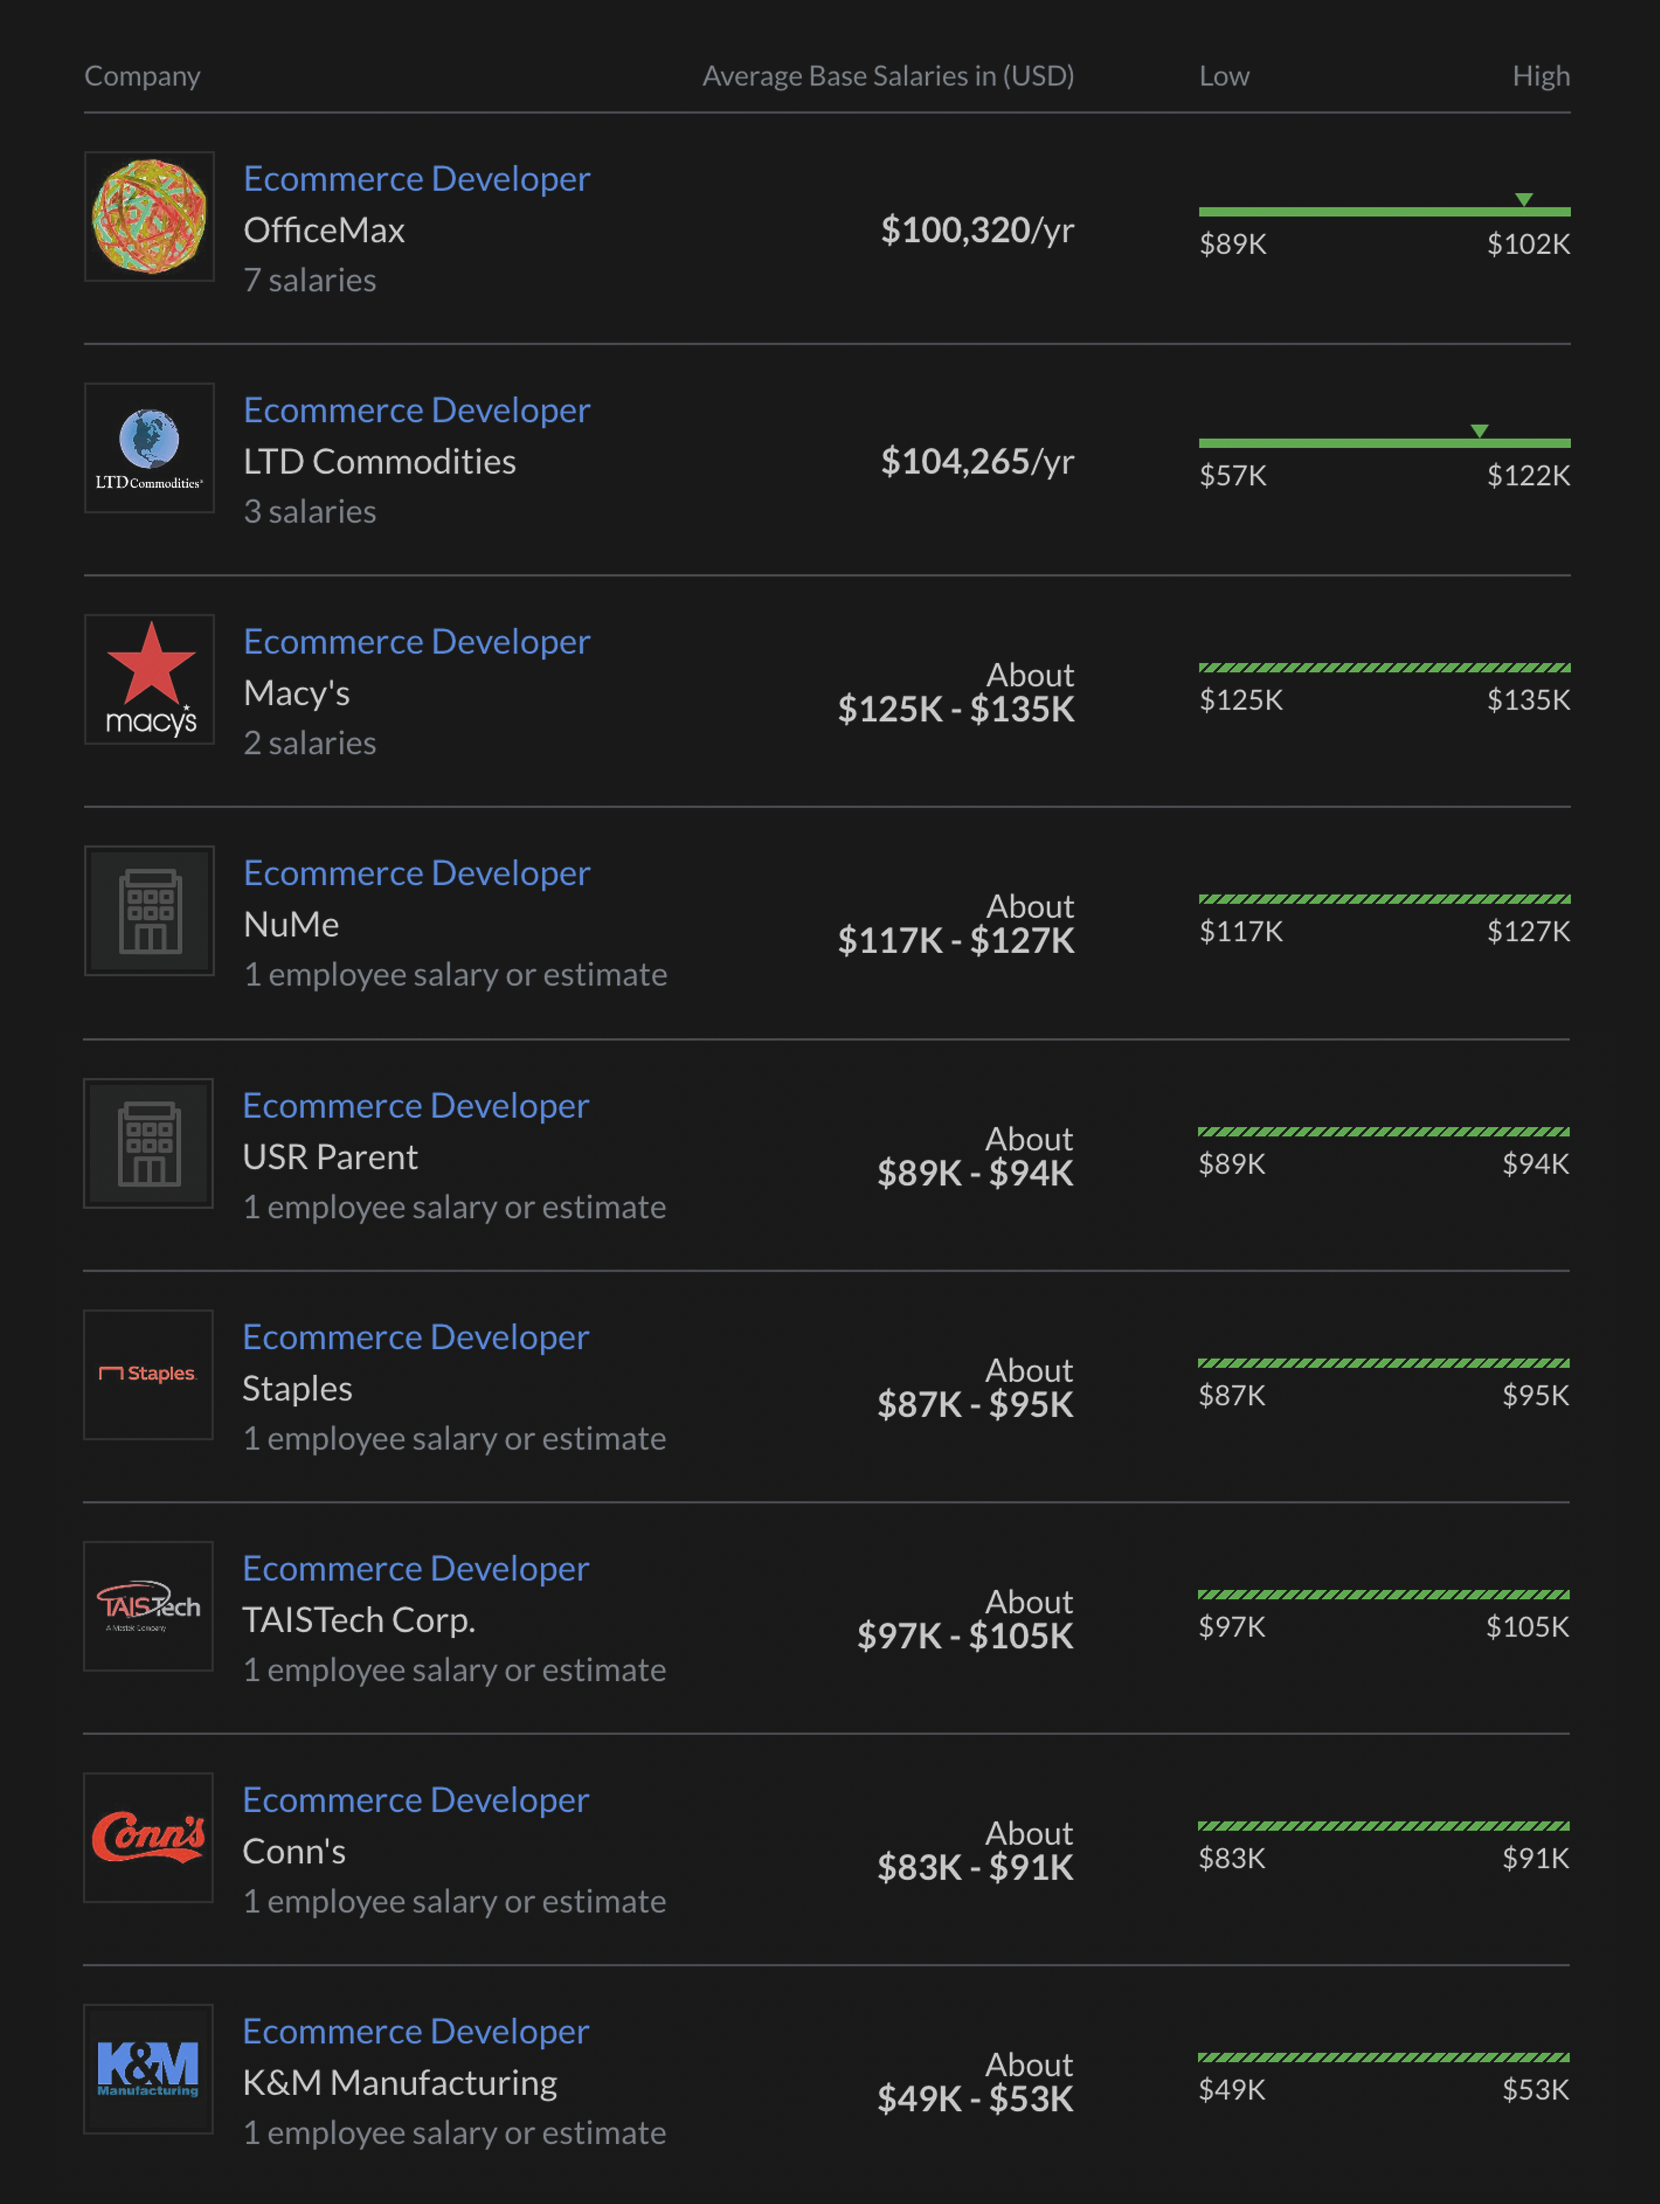 top salaries for ecommerce web developers by company